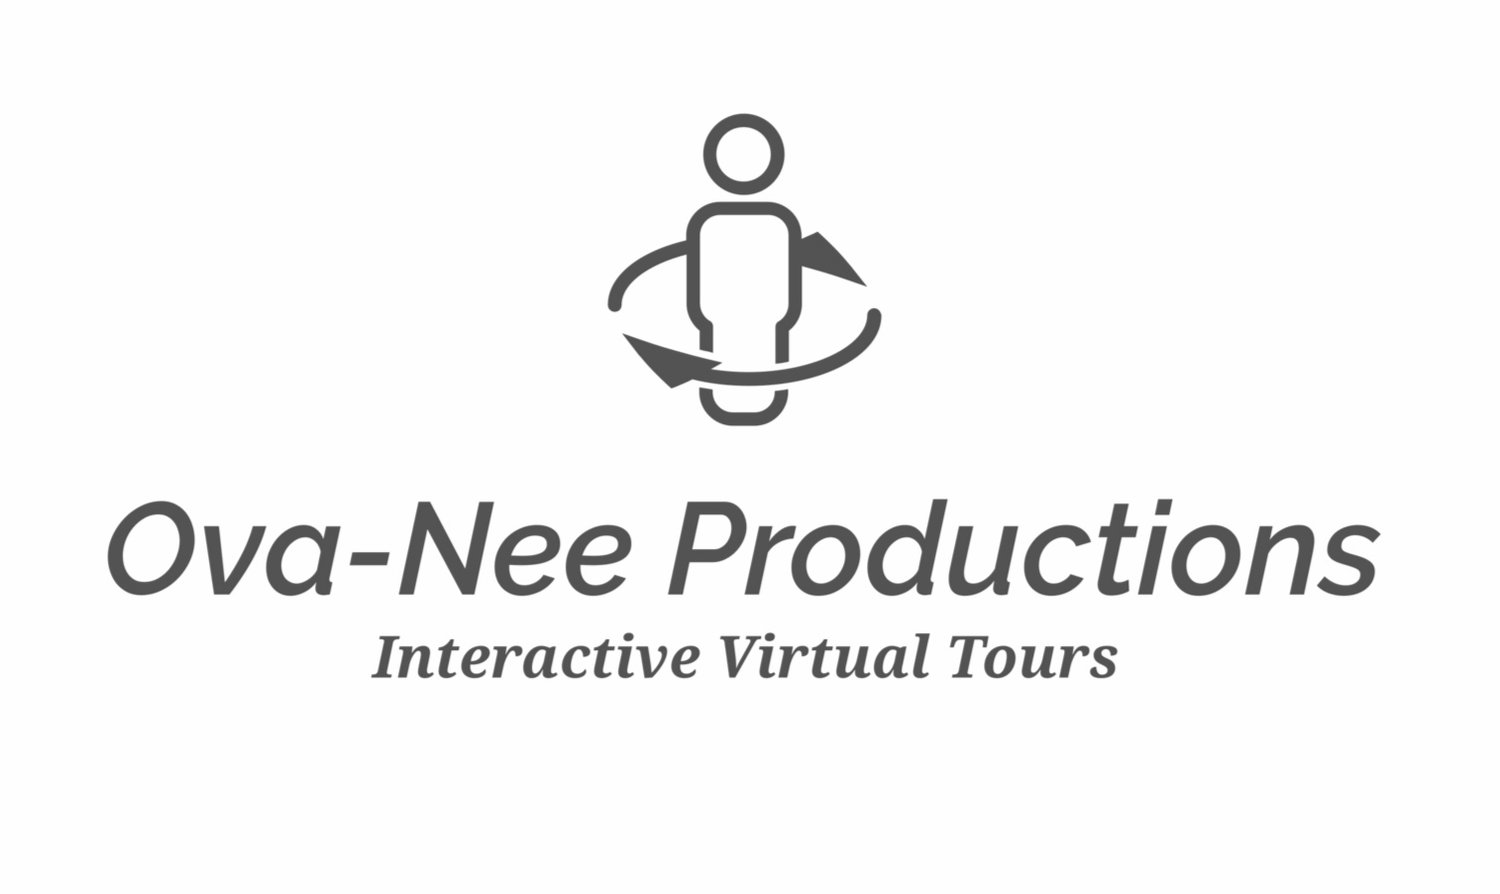 Ova-Nee Productions: An Interactive 3D Virtual Tour Company in the Portland Area